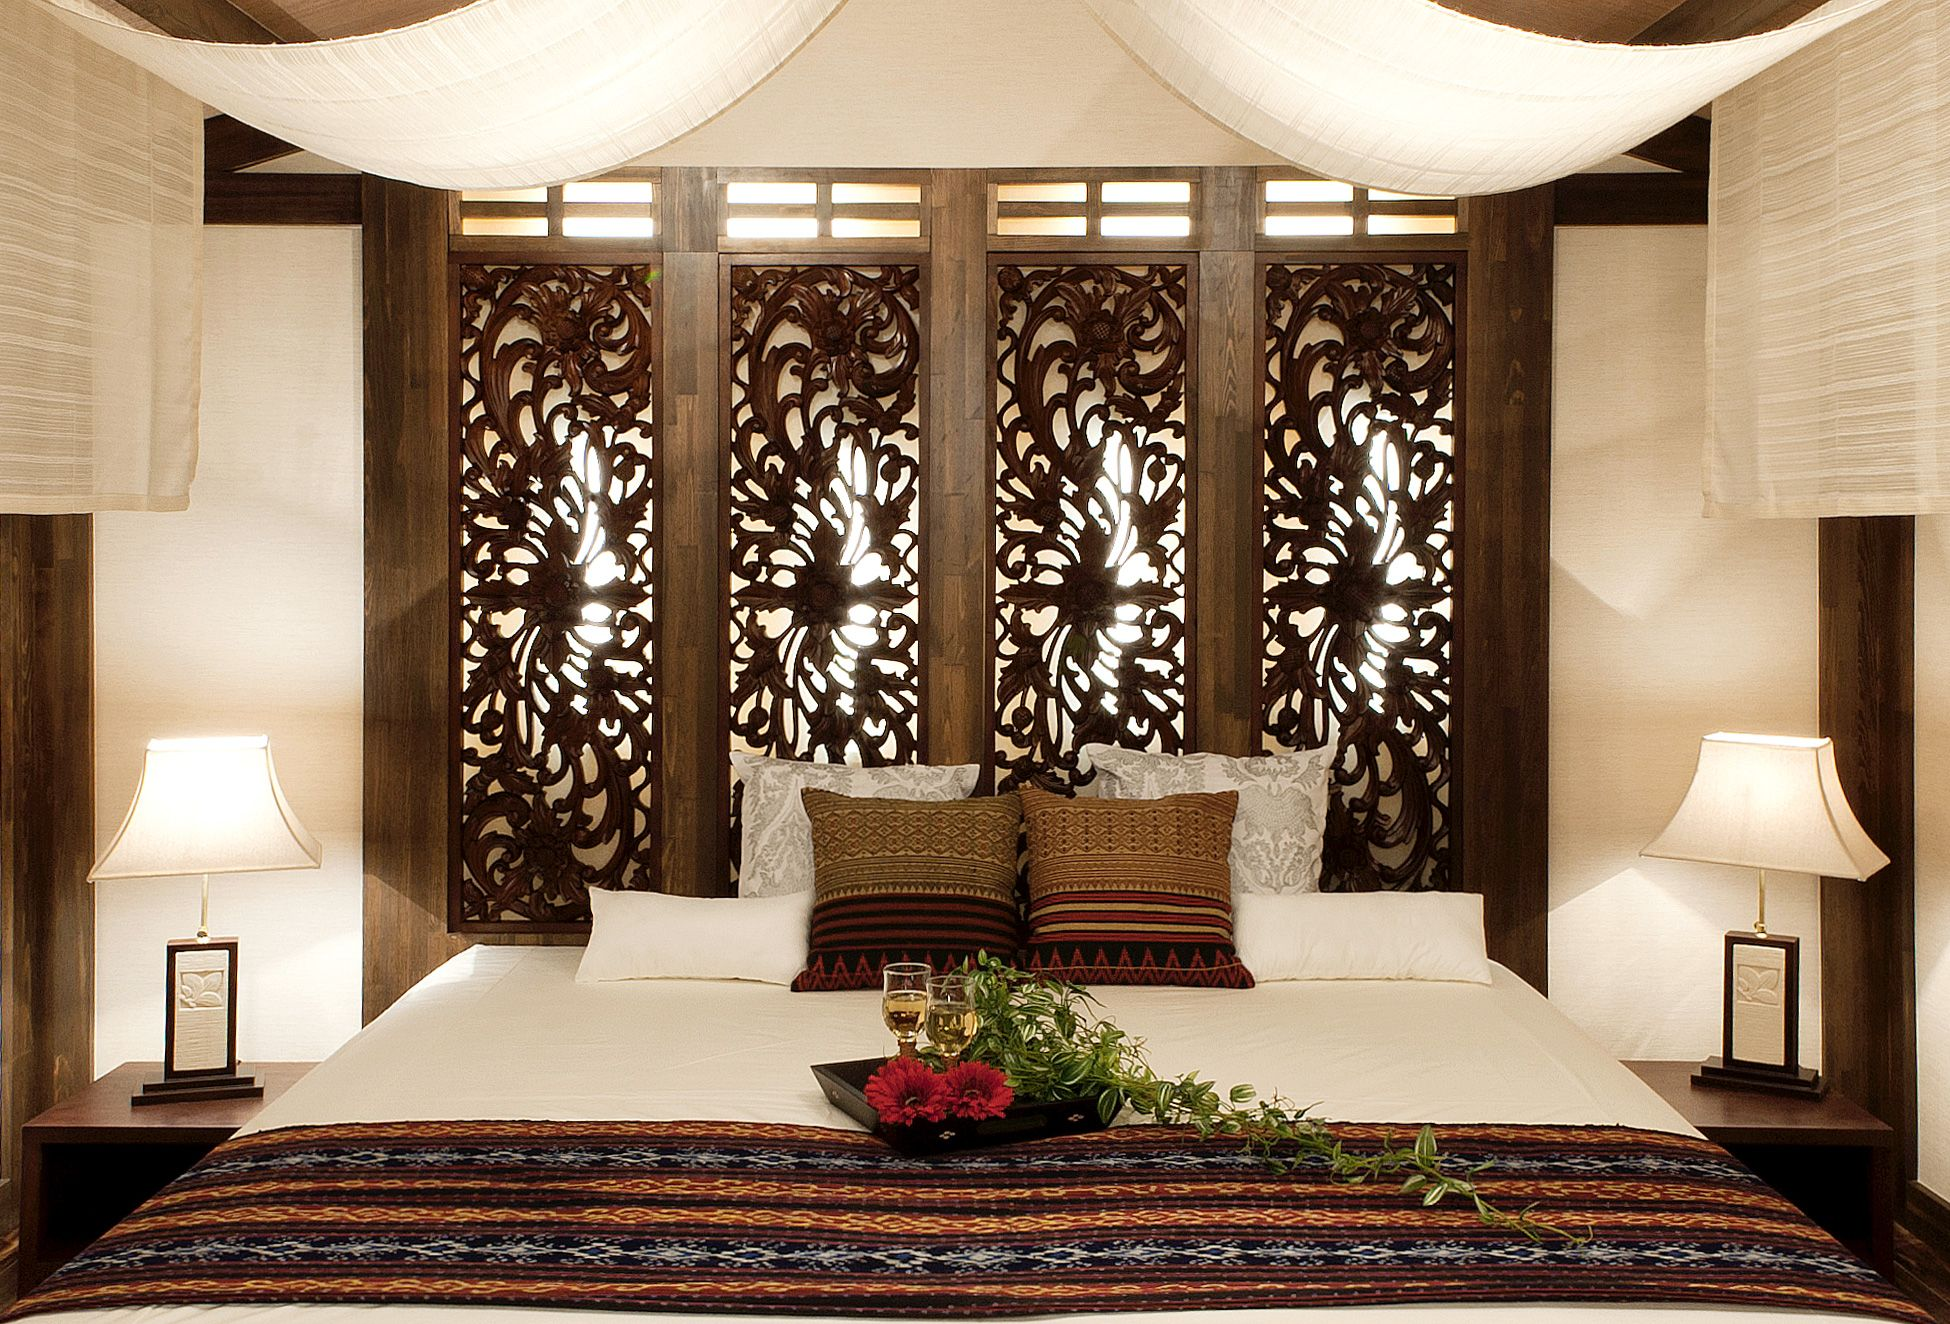 ASIAN STYLEResidenceIndonesia wood relief,bed,light